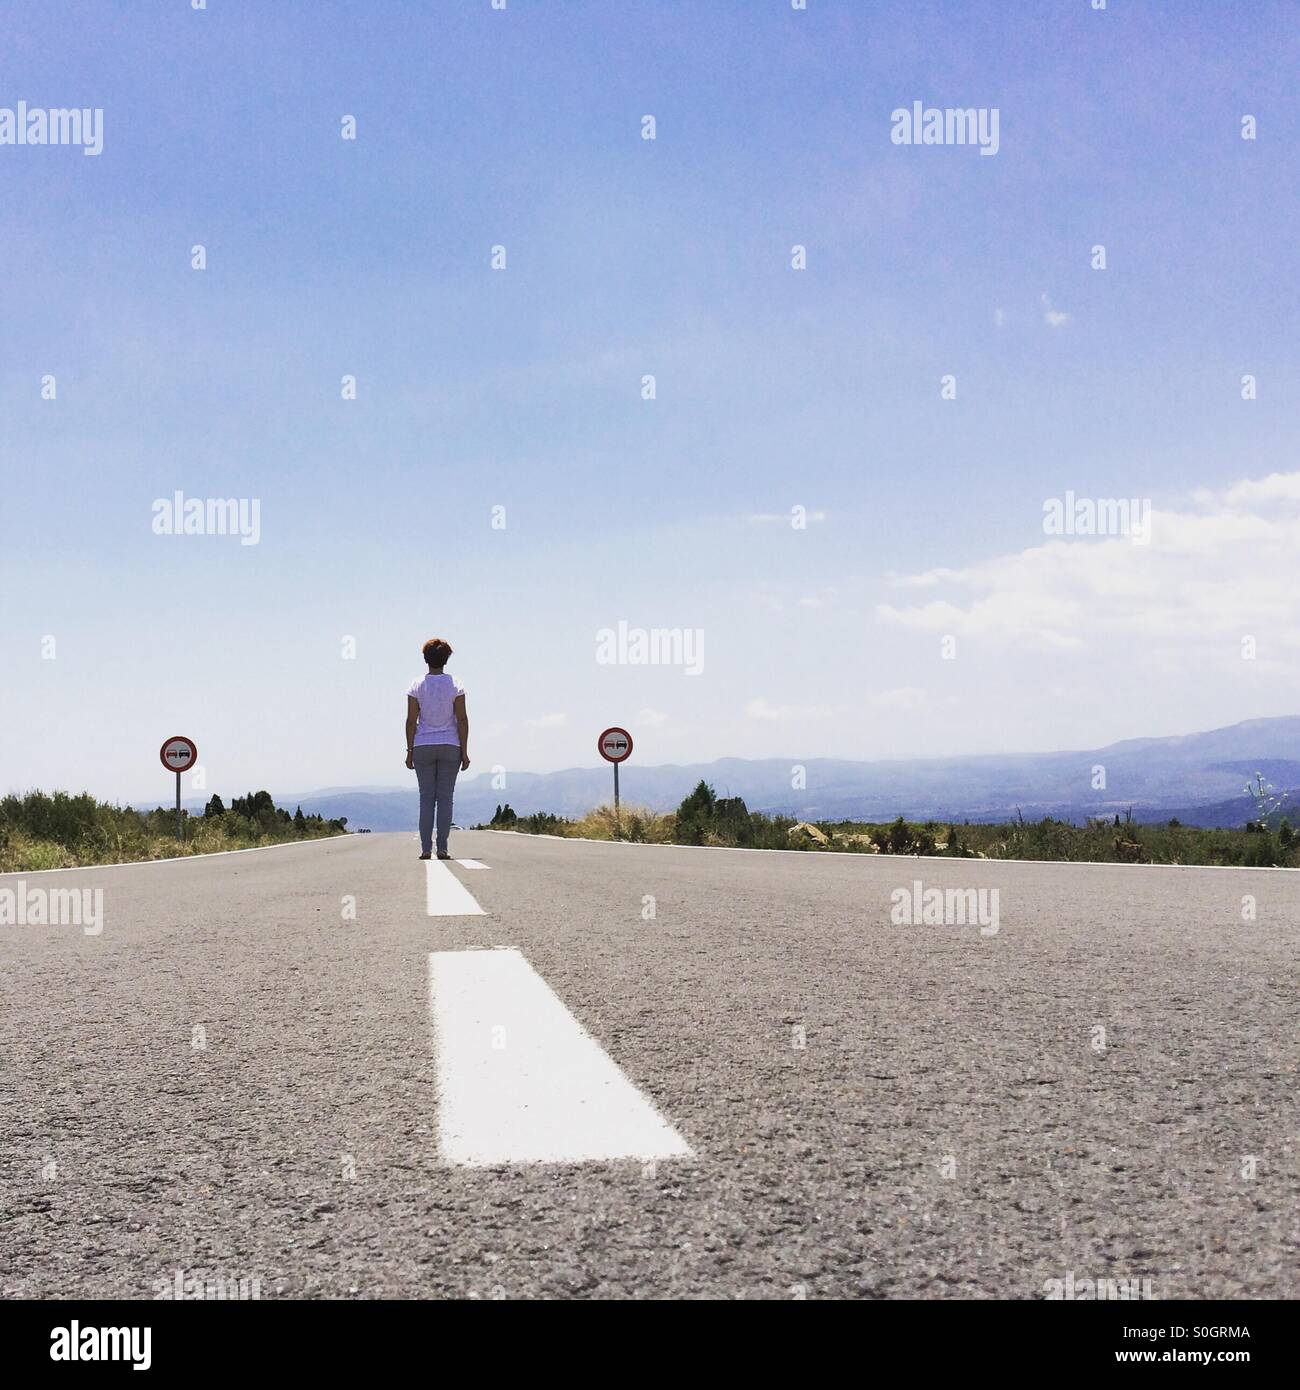 Woman on an empty road - Stock Image